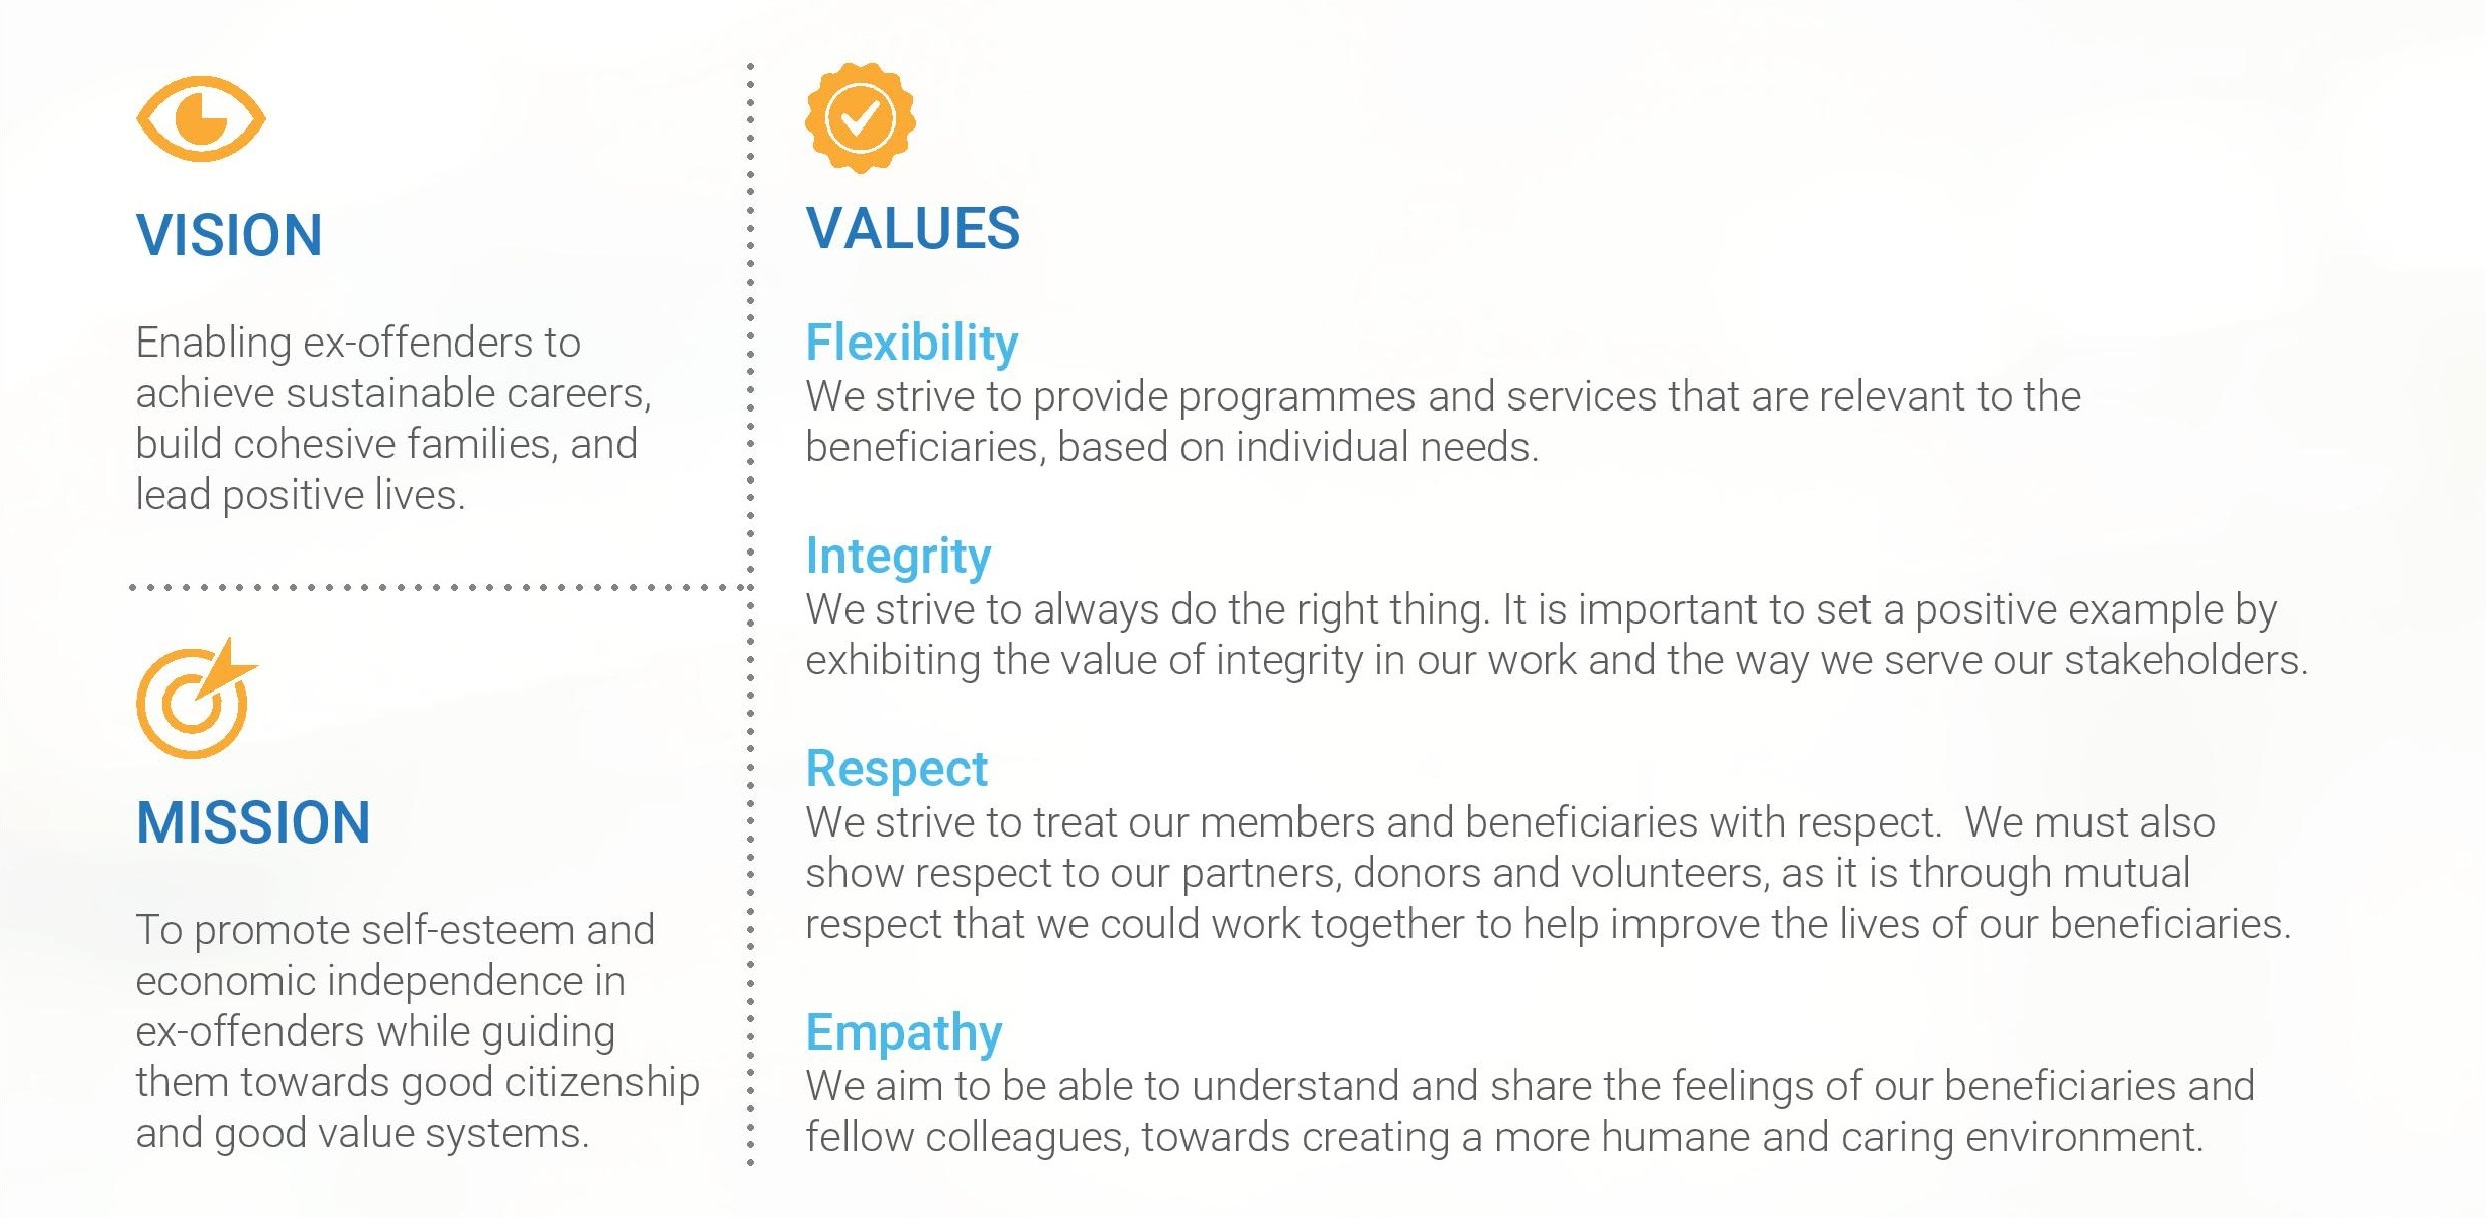 3 ISCOS Infographic_Vision Mission Values